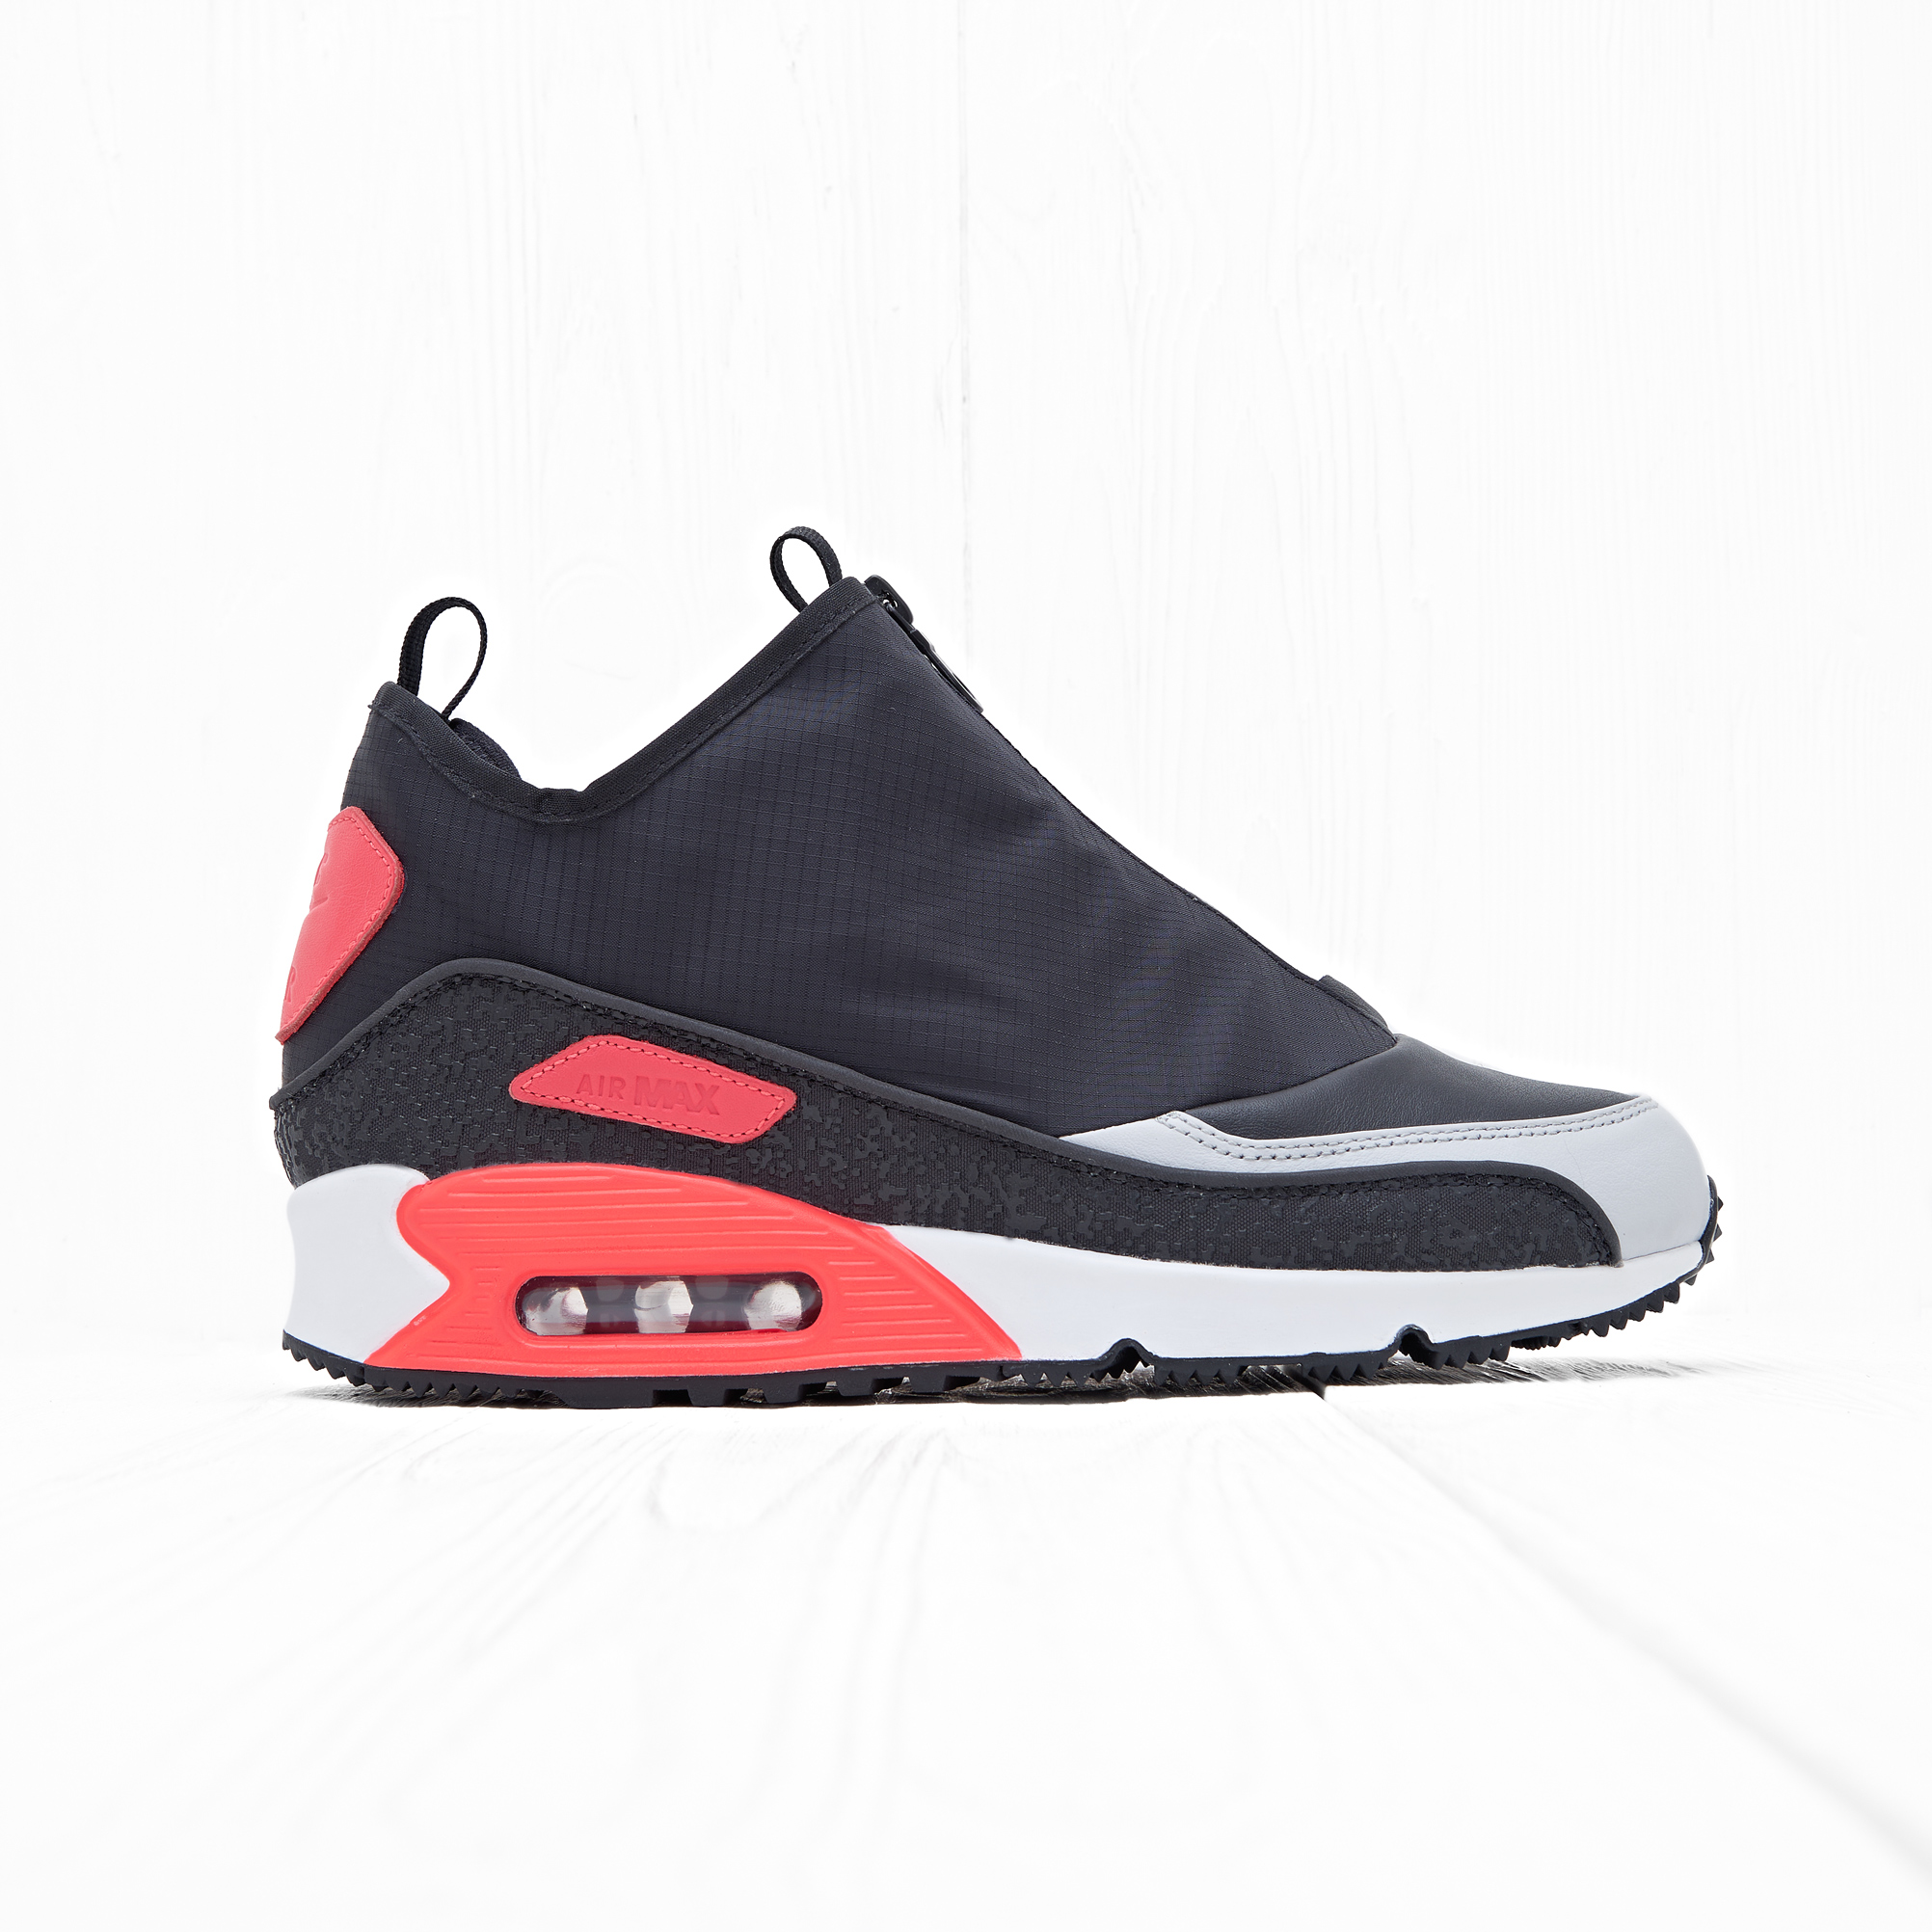 Кроссовки Nike AIR MAX 90 UTILITY Black/Cool Grey-Neutral Grey-Infrared